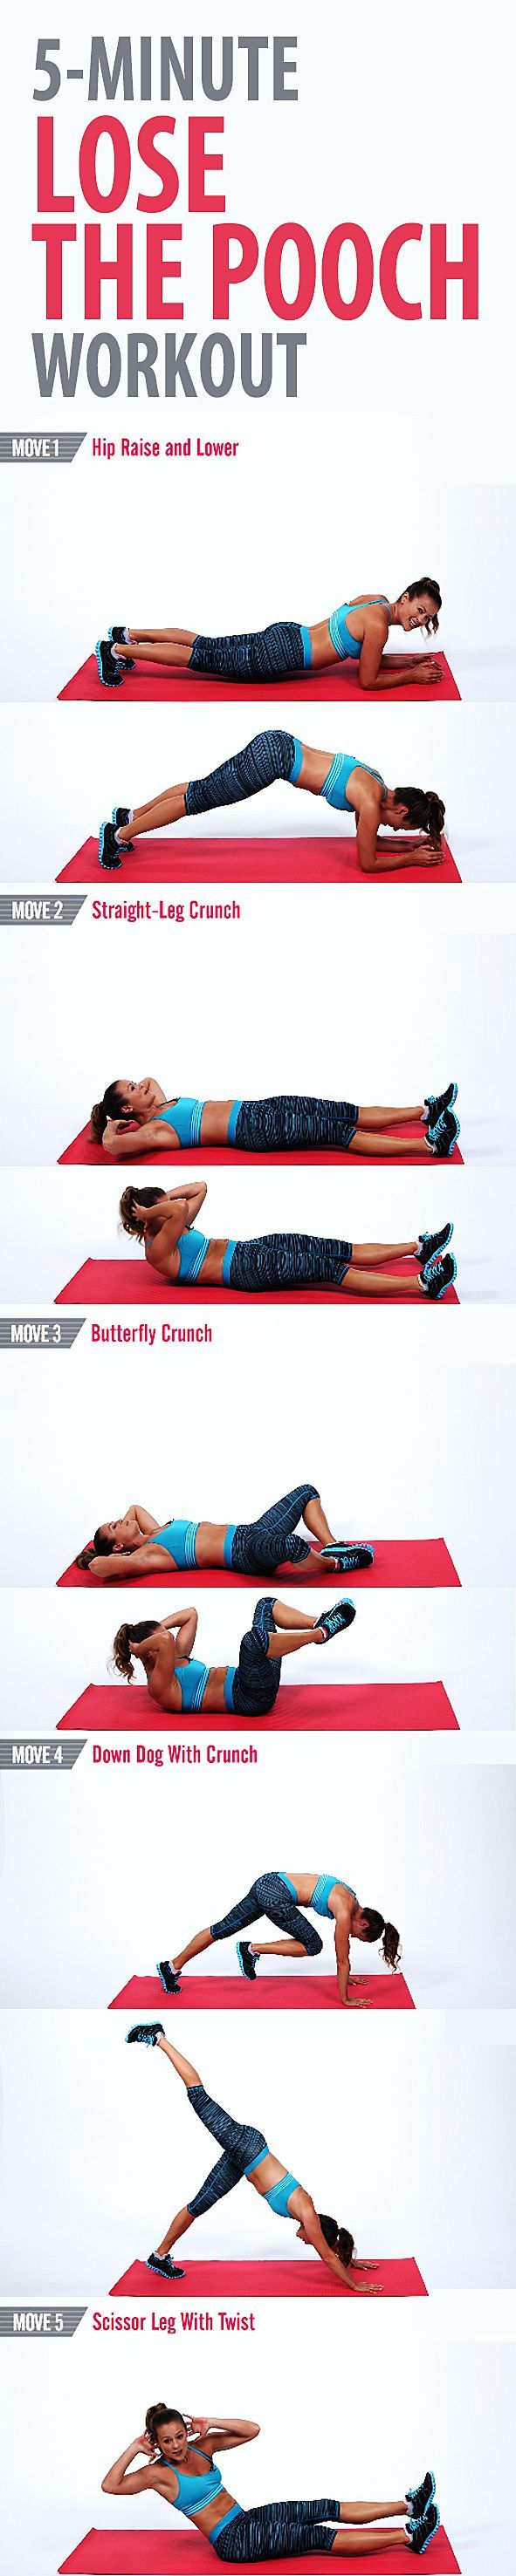 Try this quick and focused workout to tone the lower part of your abs and work off the pooch. We concentrate on the abs for five minutes and guarantee you feel the burn. You don't need any equipment, but don't forget to breathe! #abs #sixpack #flatstomach #flatbelly #coreworkout #abworkout #sixpackworkout #bellyfat #muffintop #lowerabs